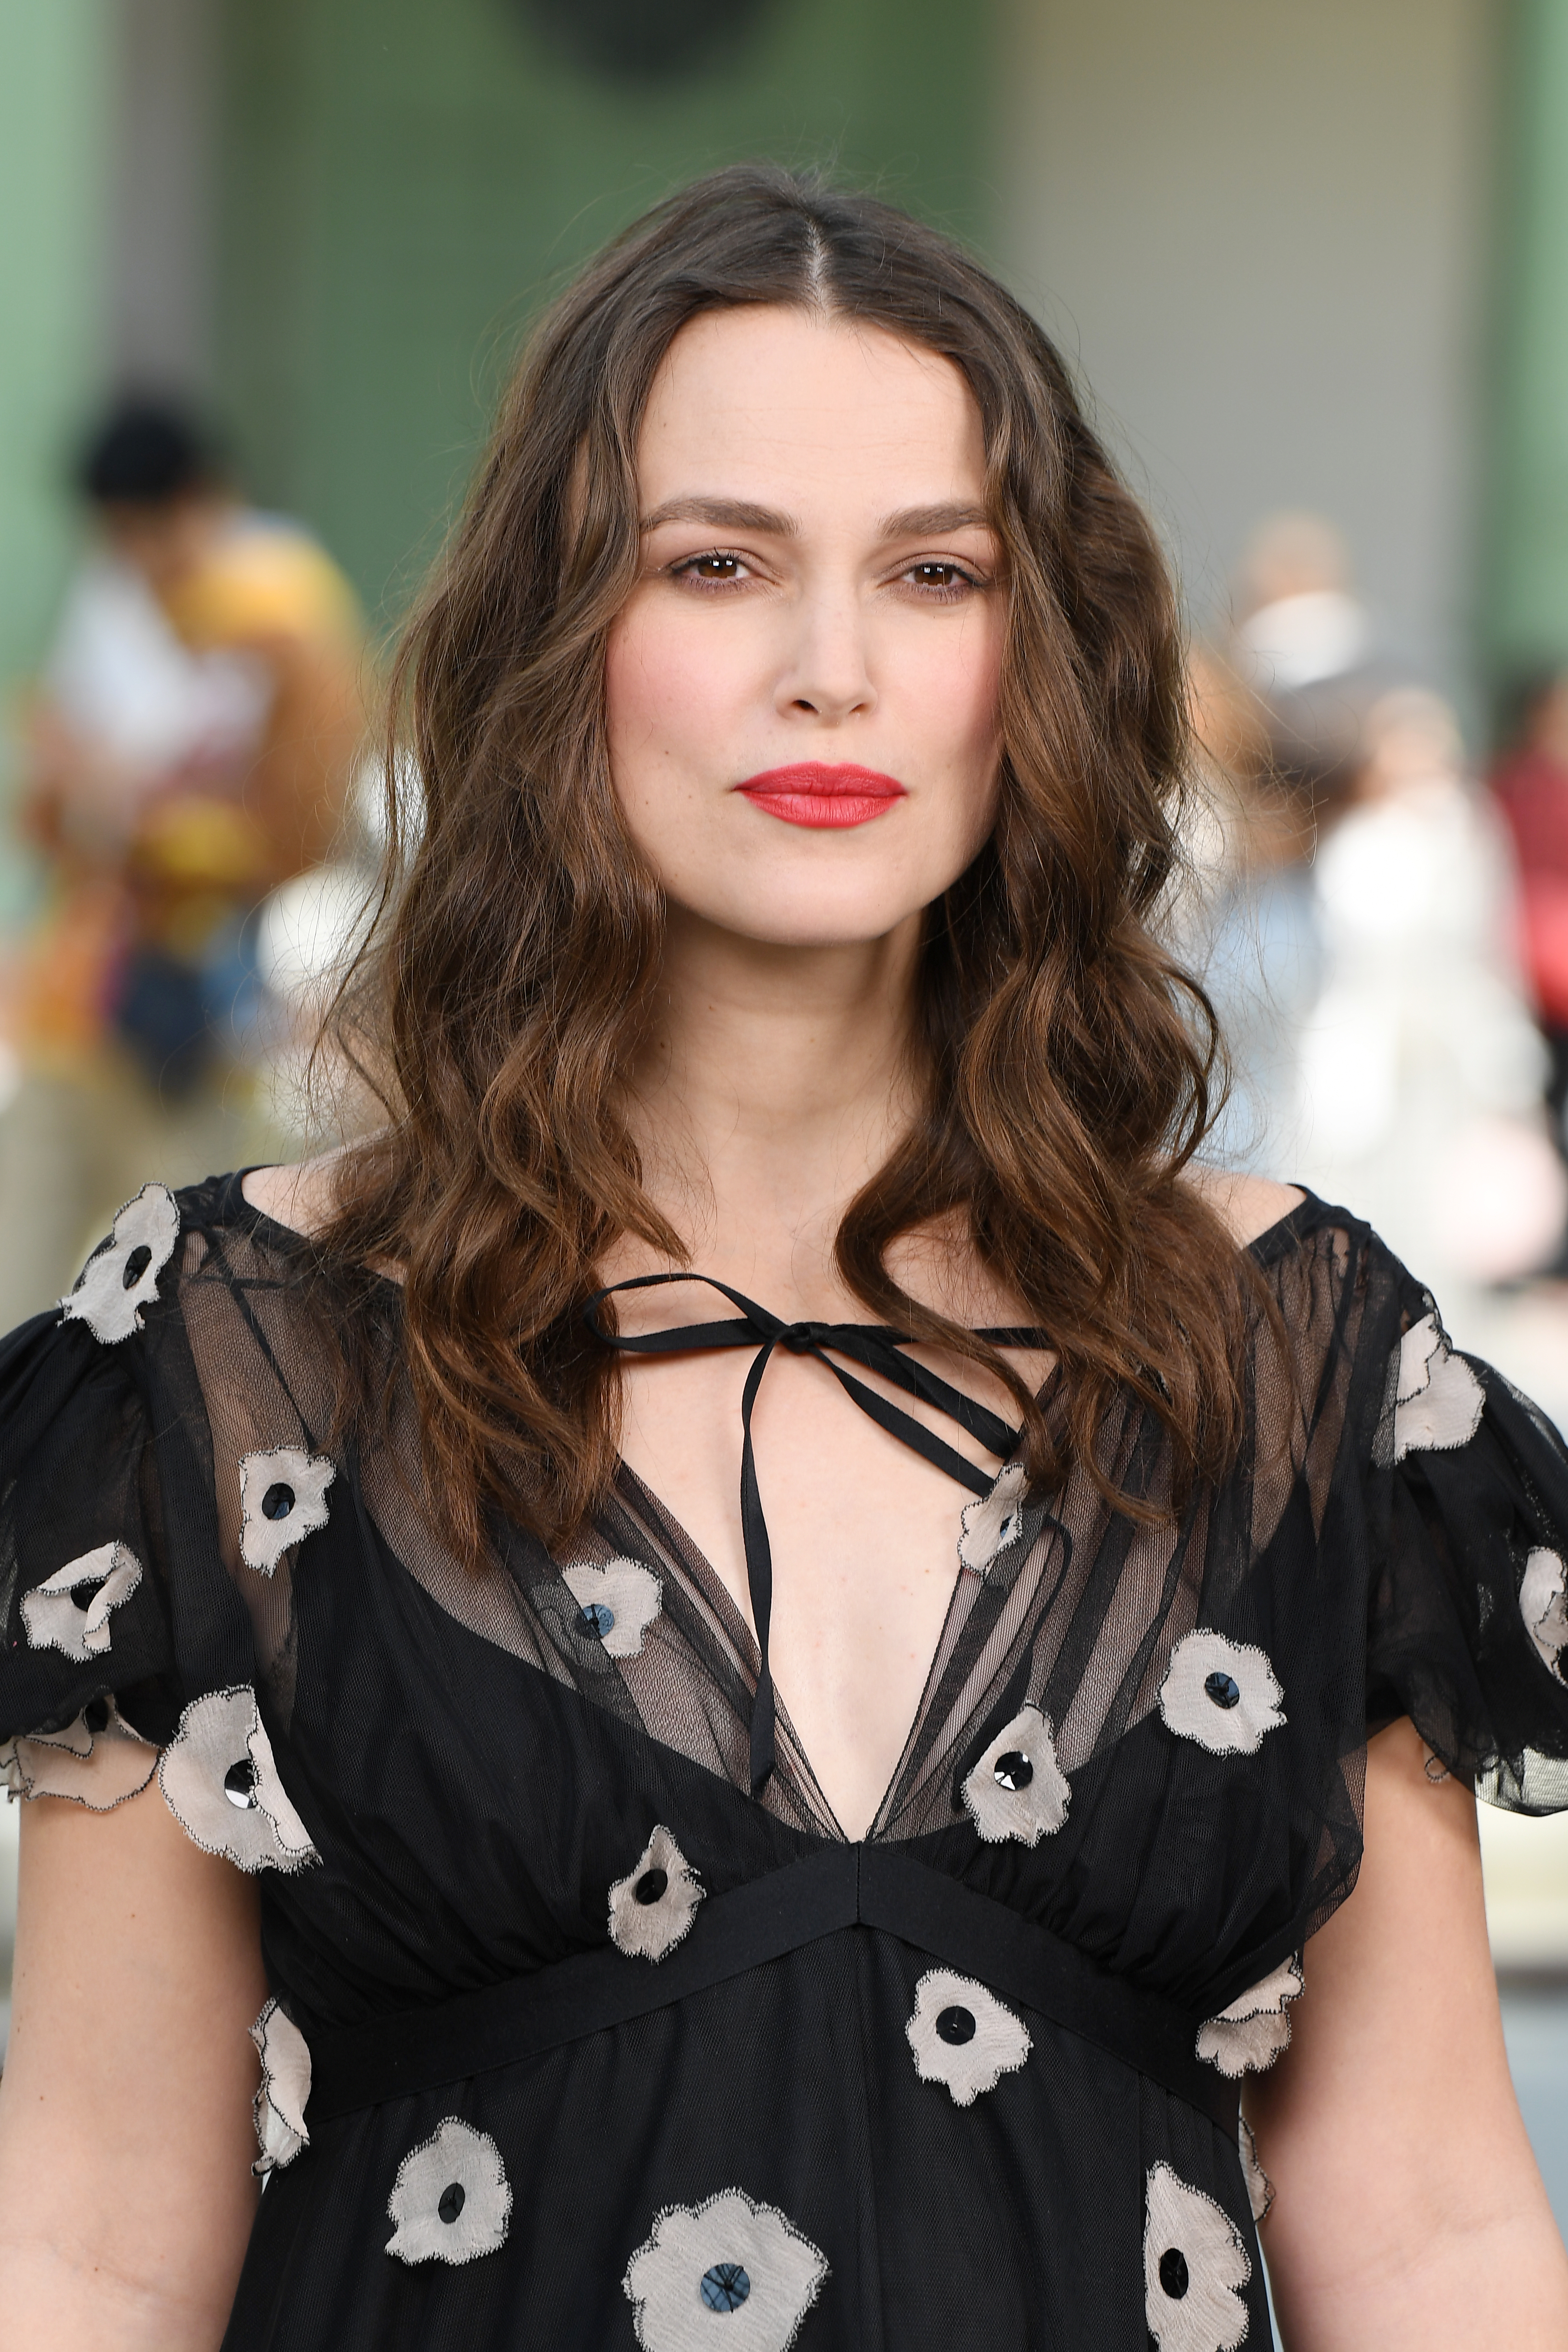 Keira Knightley attends the Chanel Cruise 2020 Collection in Paris, France. (